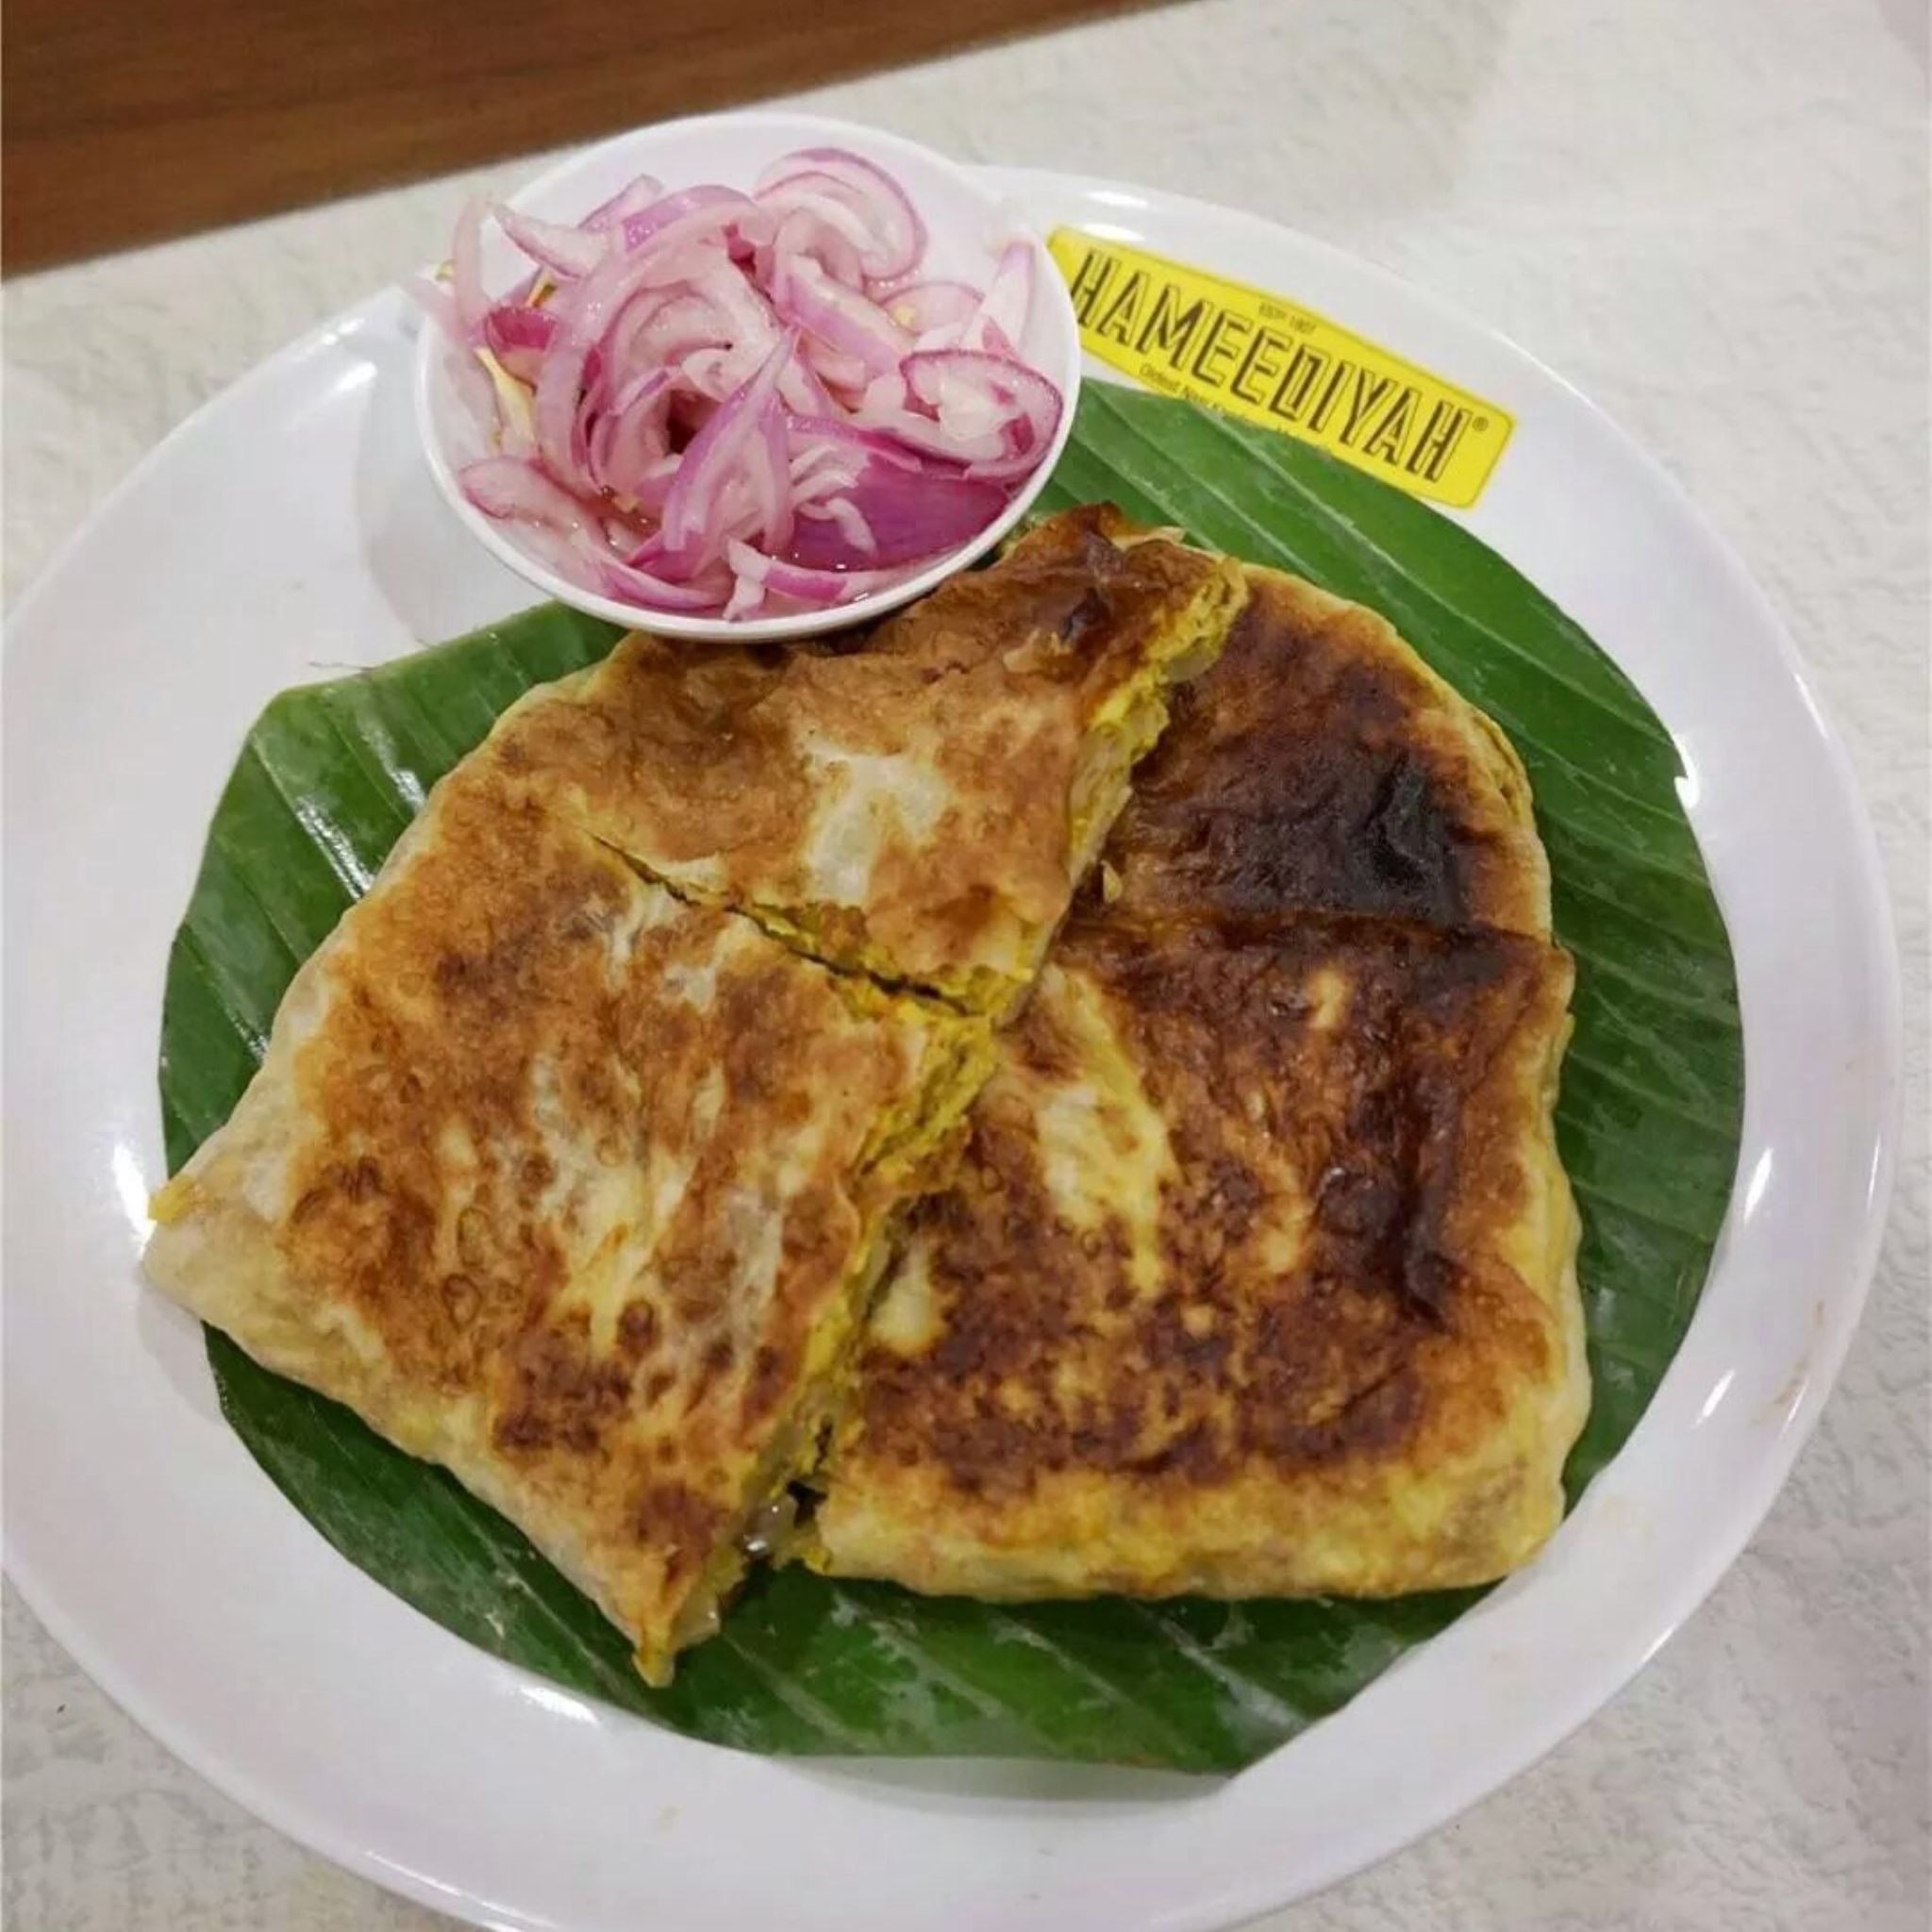 Murtabak (egg with meat cooked omelette style) dipped in curry by stefnigel